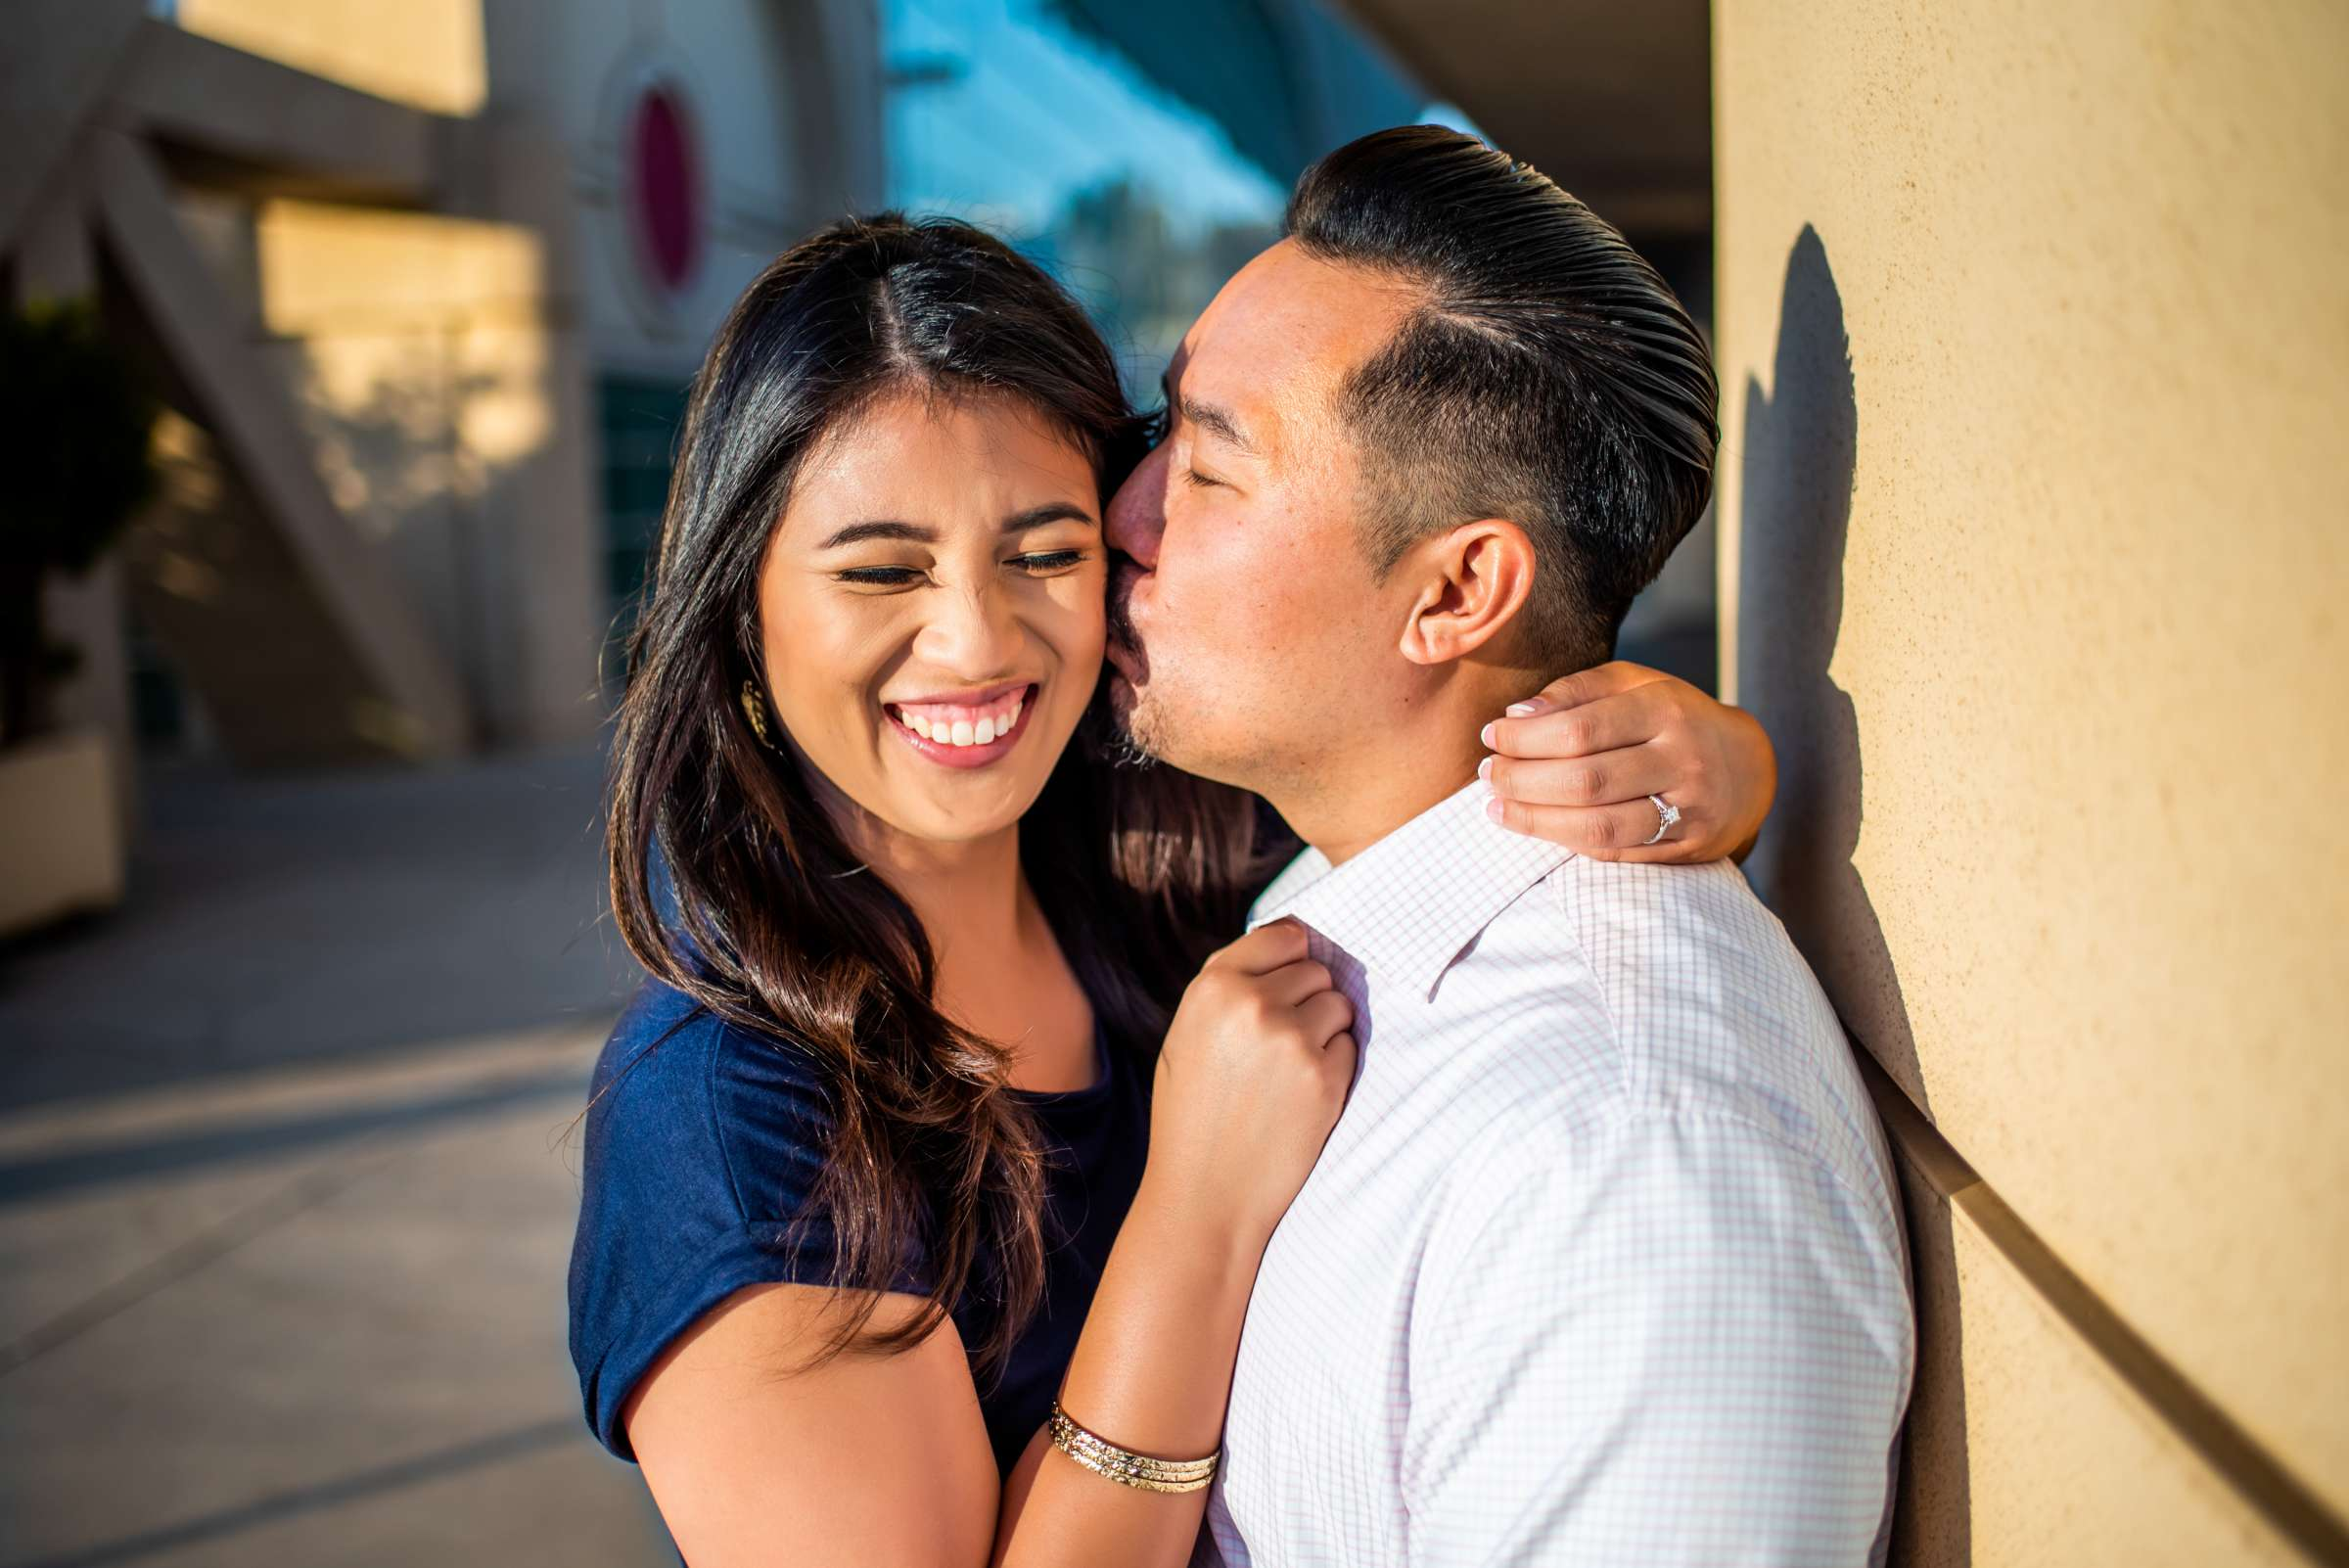 Engagement, Marijo and Ronnie Engagement Photo #17 by True Photography